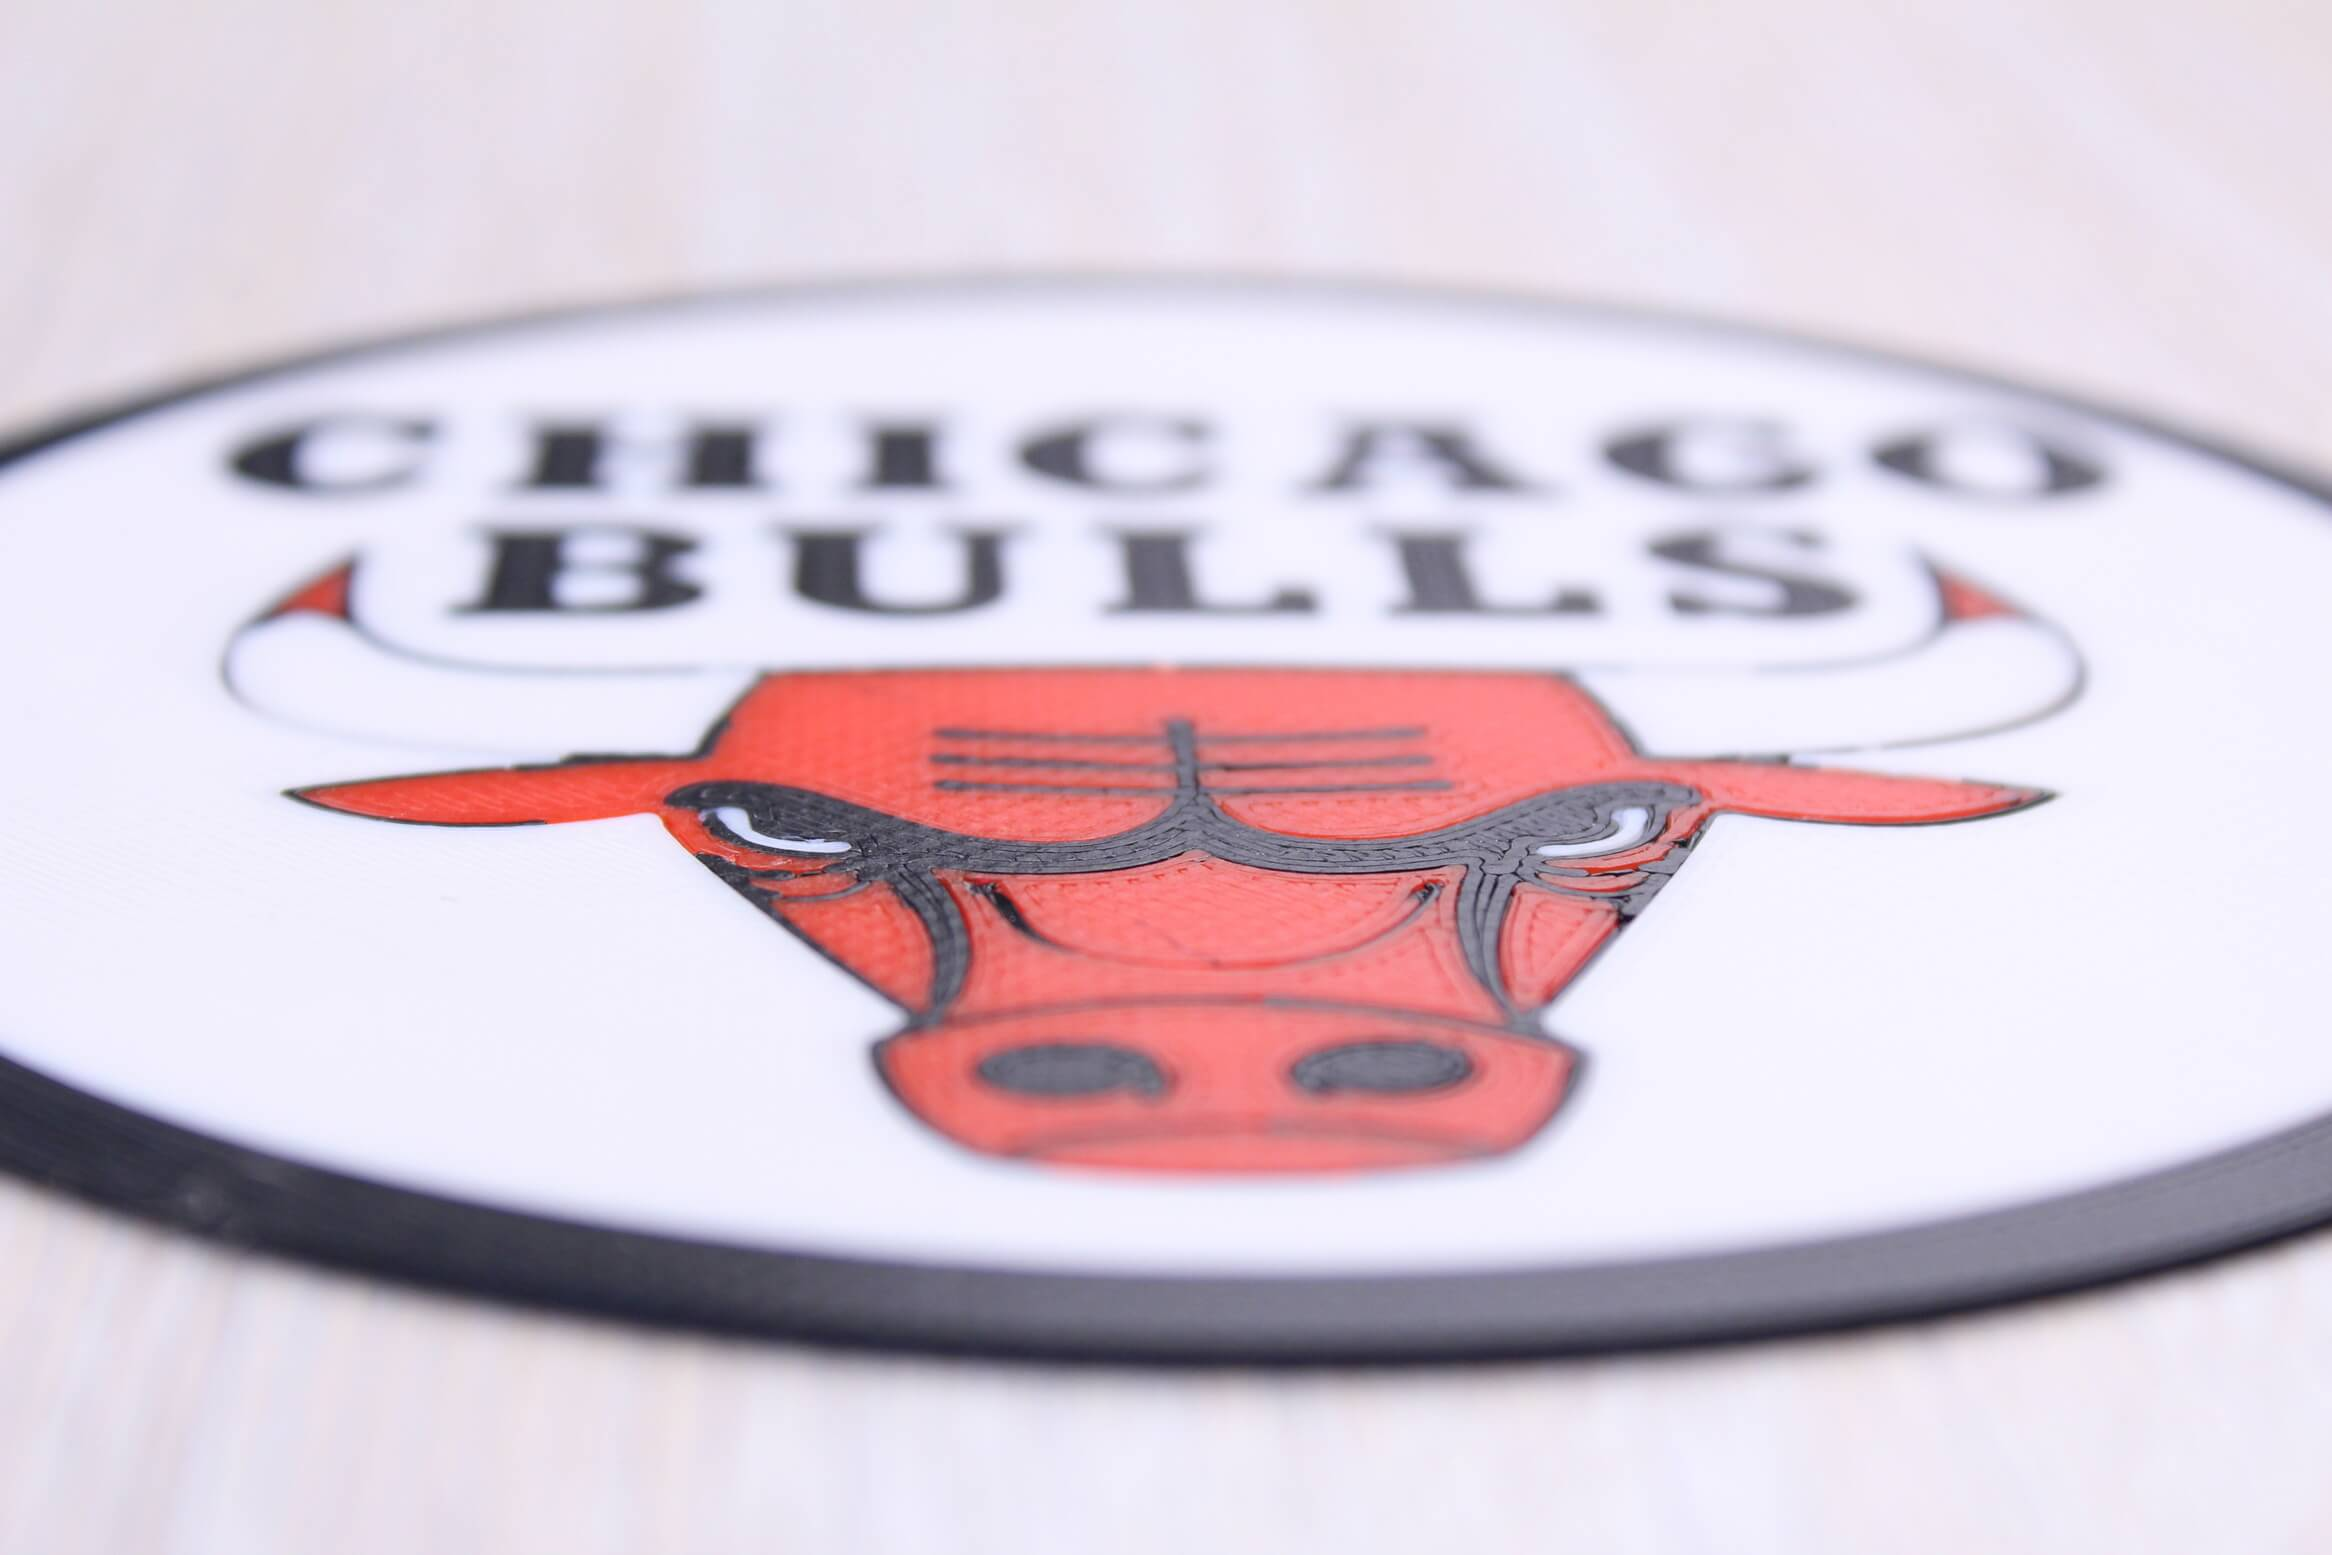 Chicago Bulls sign Multi Color 3D Print 1 | Multi-Color 3D Printing Using IdeaMaker